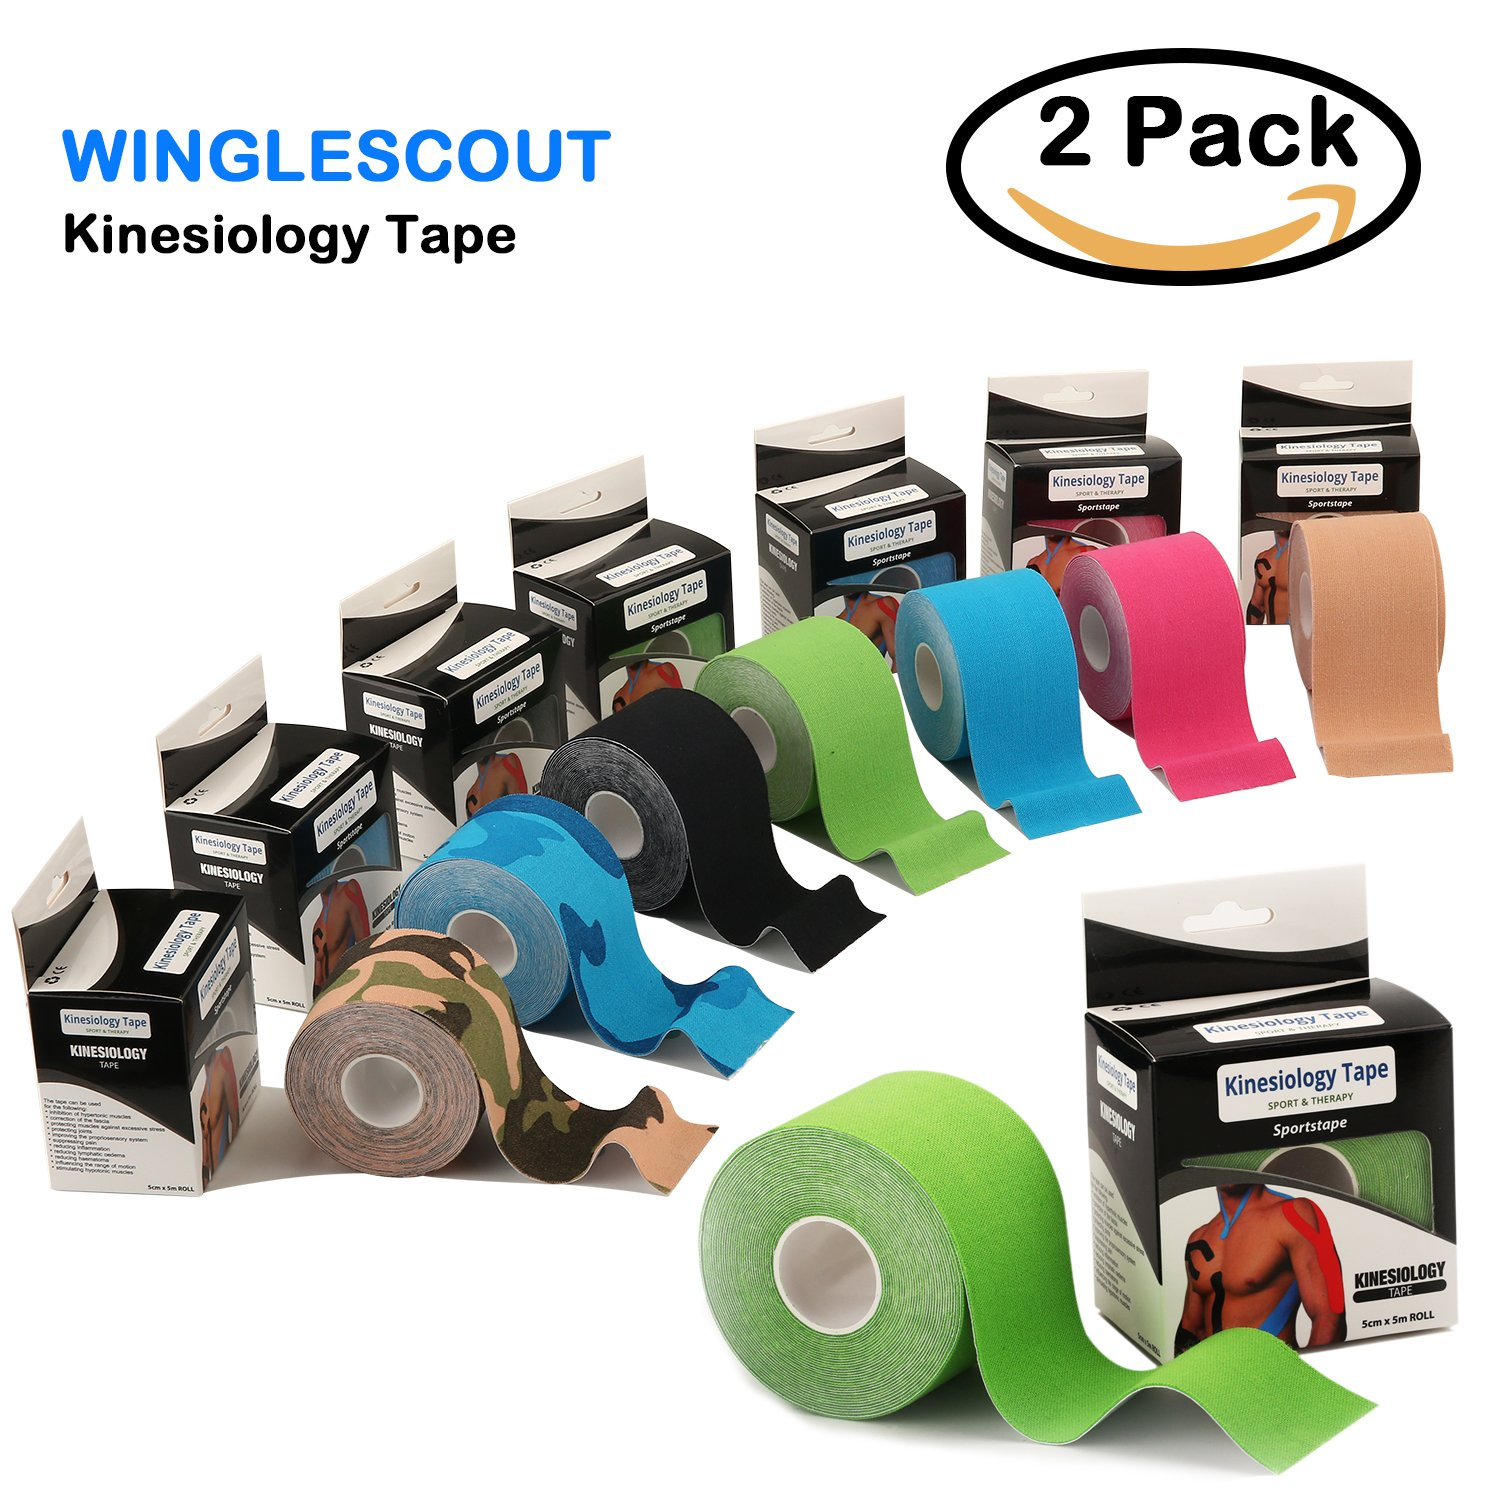 WINGLESCOUT 2-Pack Sport Kinesiology Tape, 5cm x 5m Roll Uncut, Waterproof Therapeutic Sports Tape, Breathable Muscle Support Adhesive (Green)